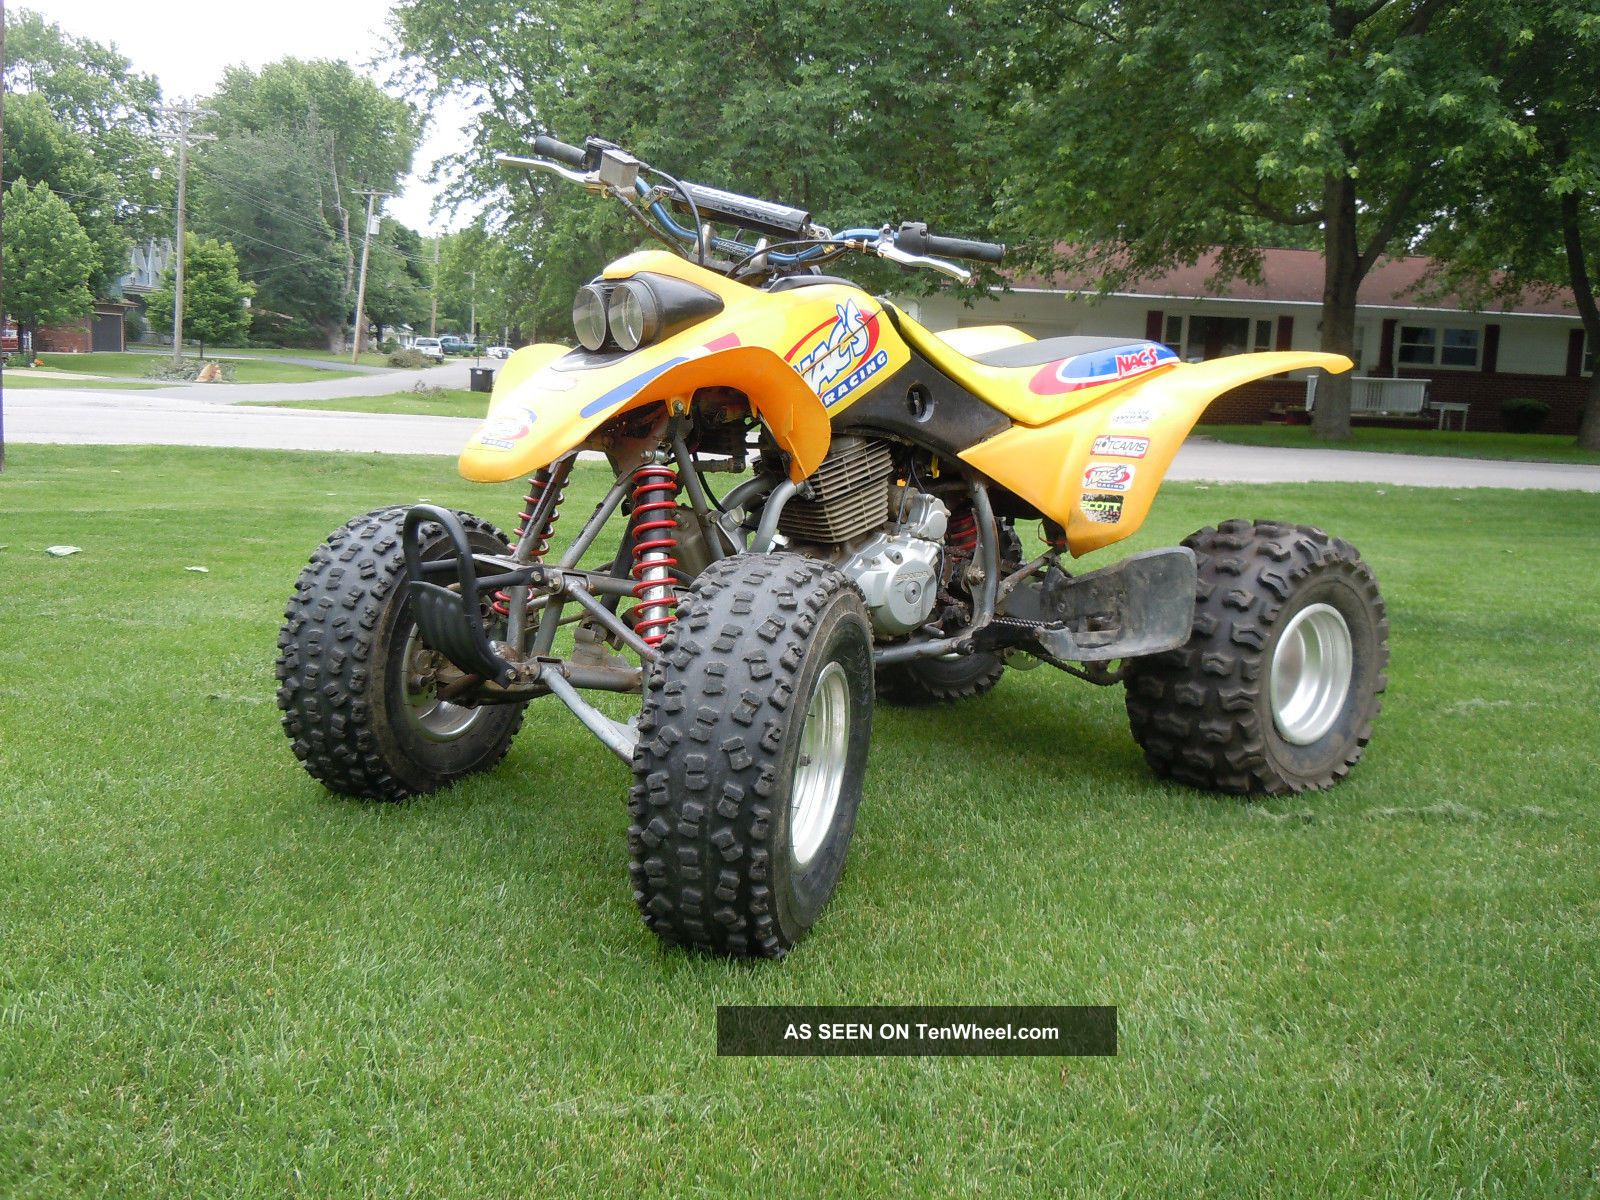 2001 Honda Trx 400 Ex Honda photo